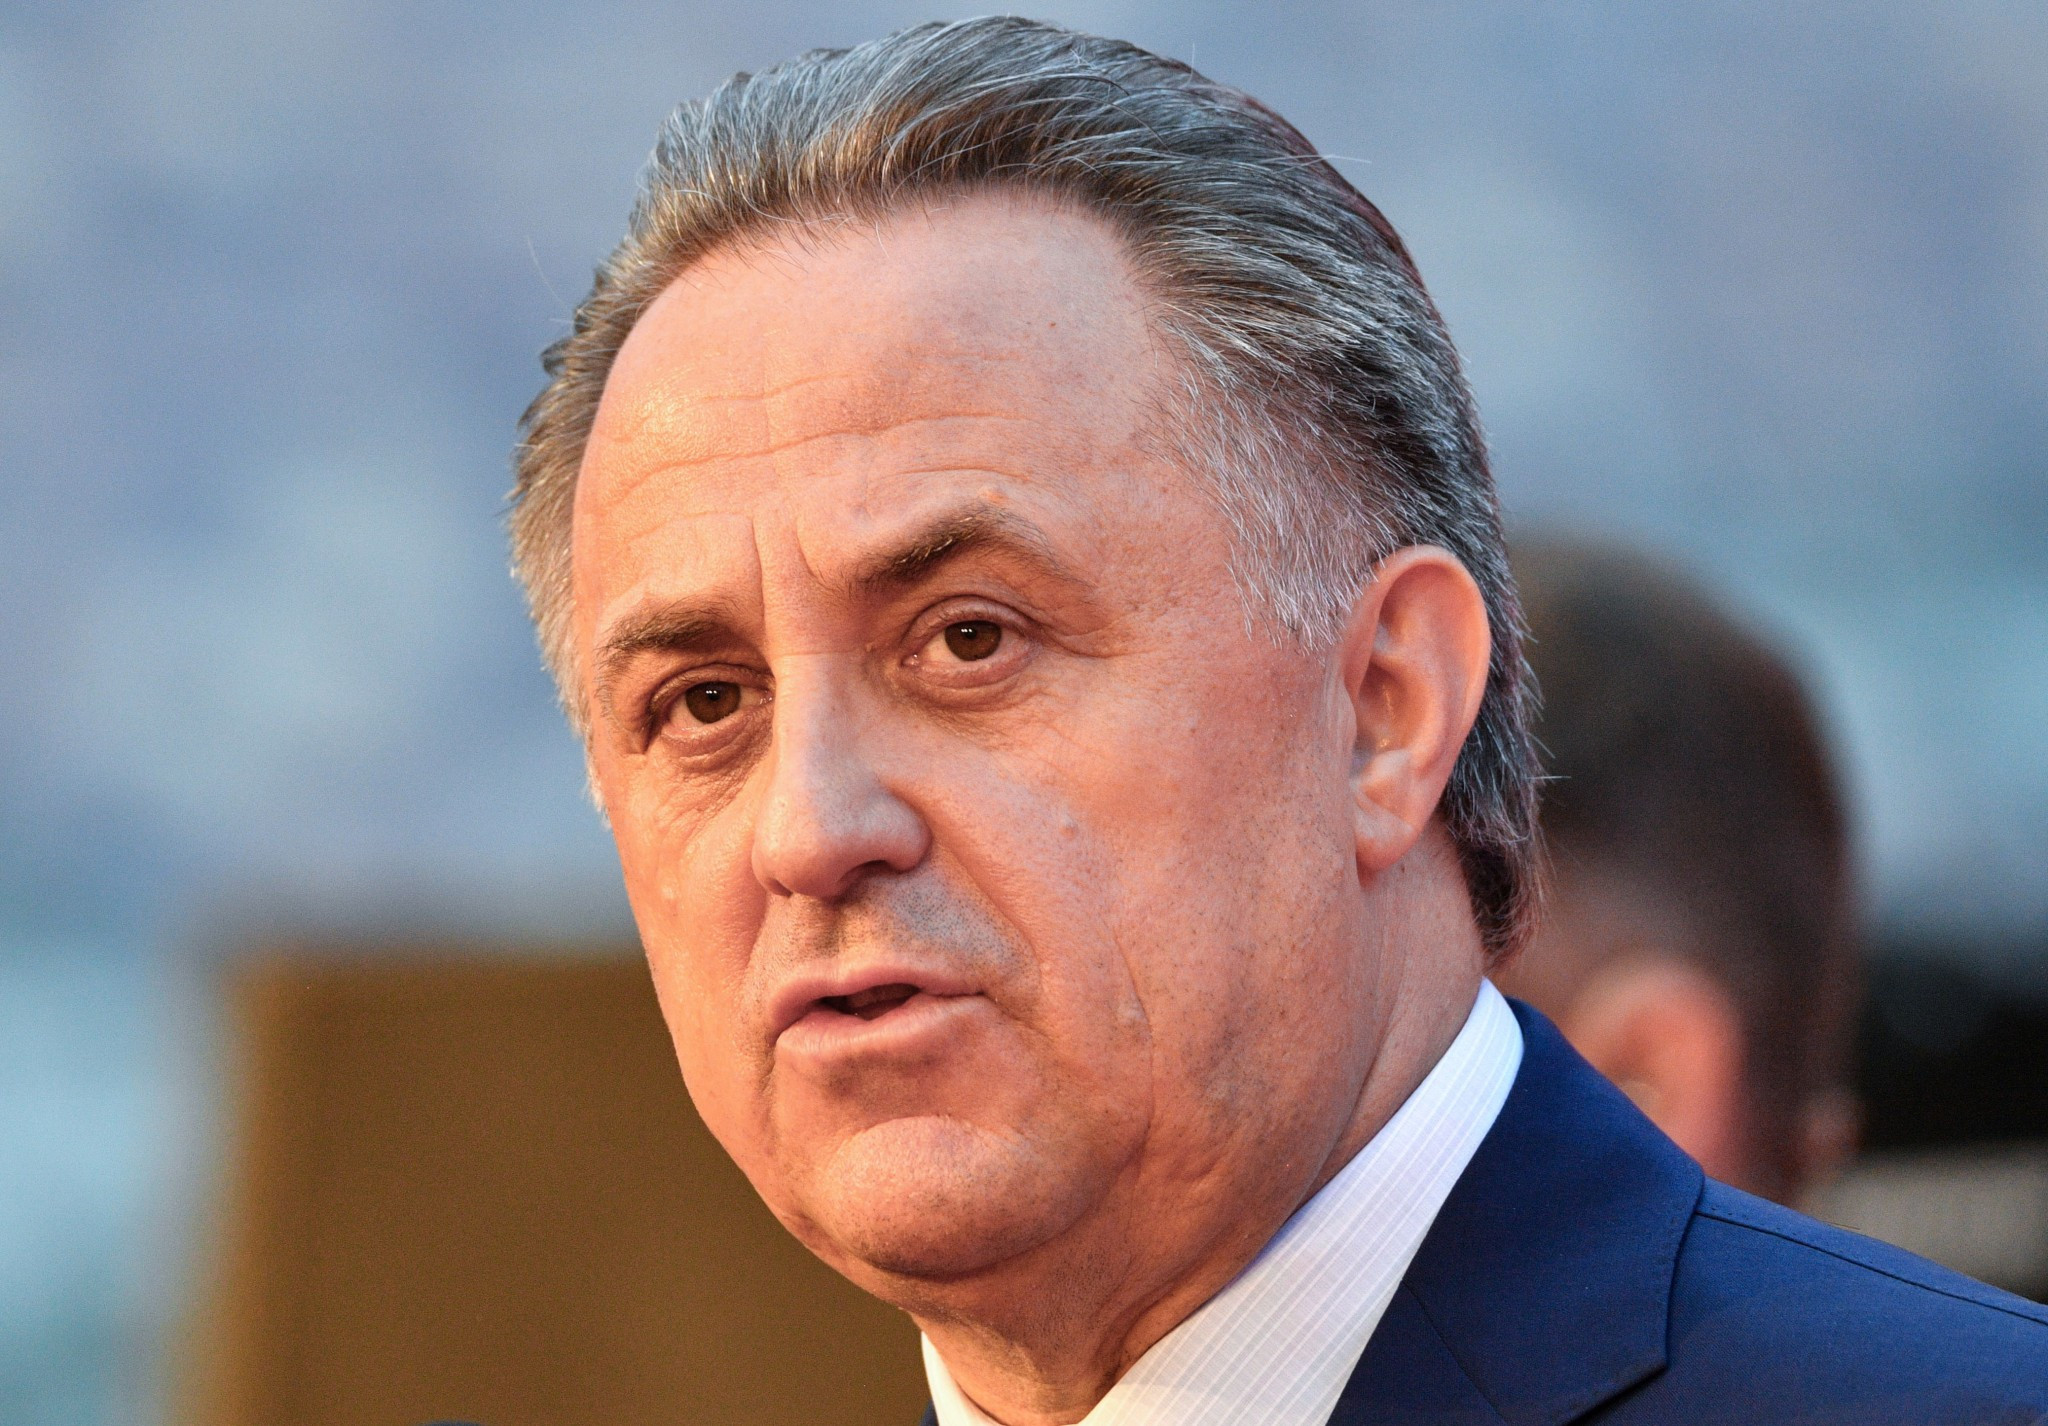 Vitaly Mutko has claimed almost all of the issues blocking RUSADA's compliance have been resolved ©Getty Images